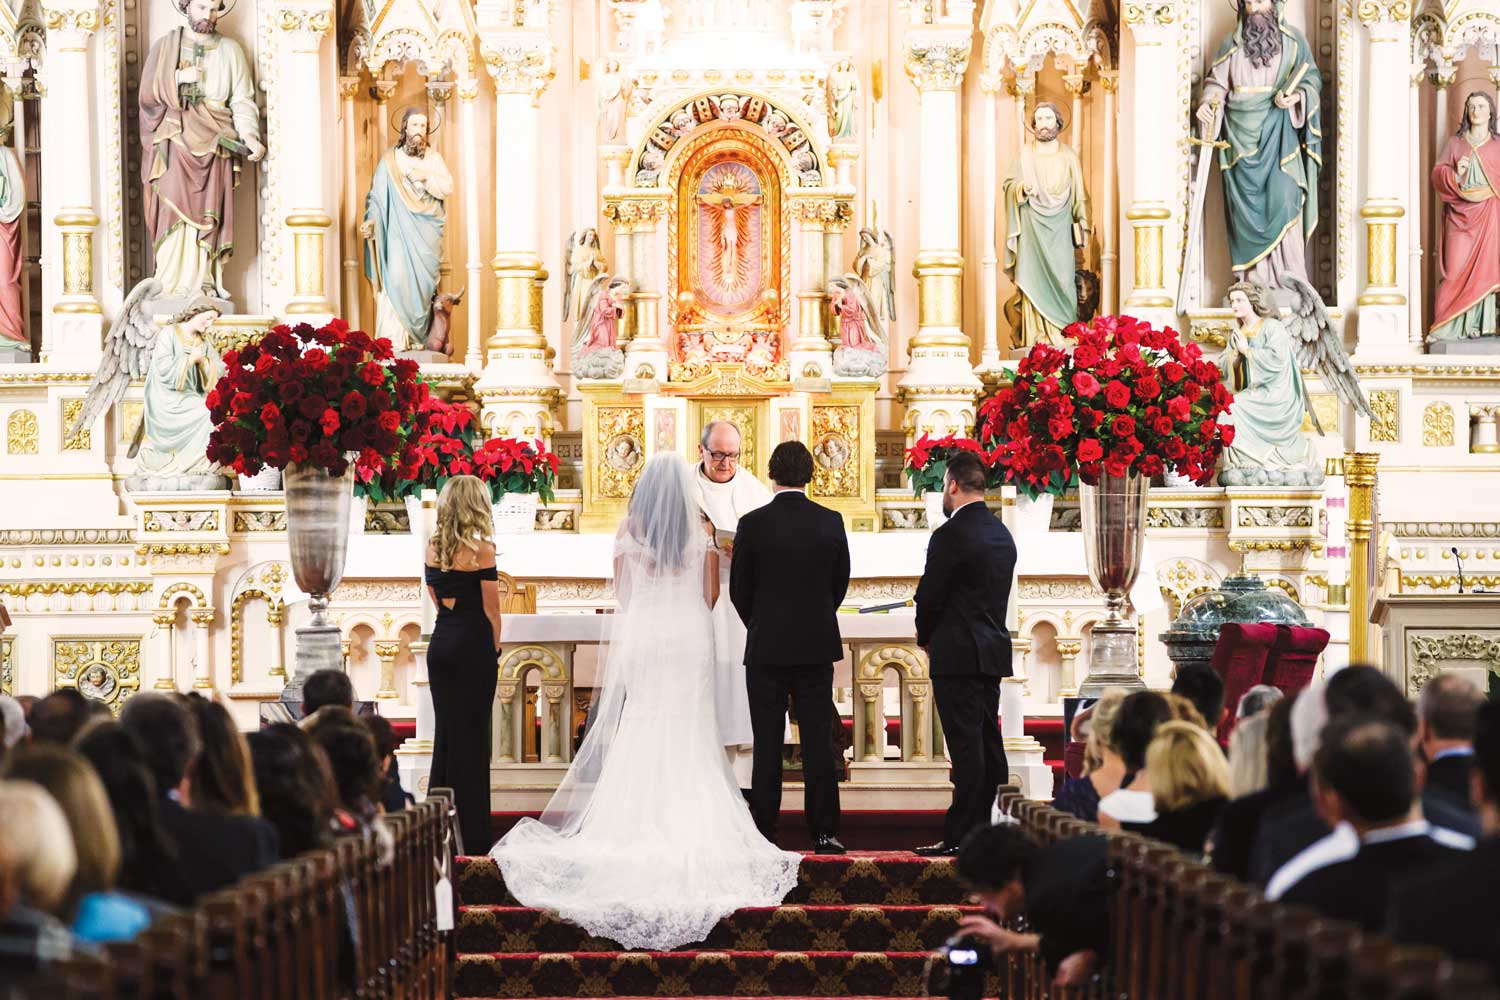 inside weddings winter 2019 issue preview traditional catholic church ceremony winter